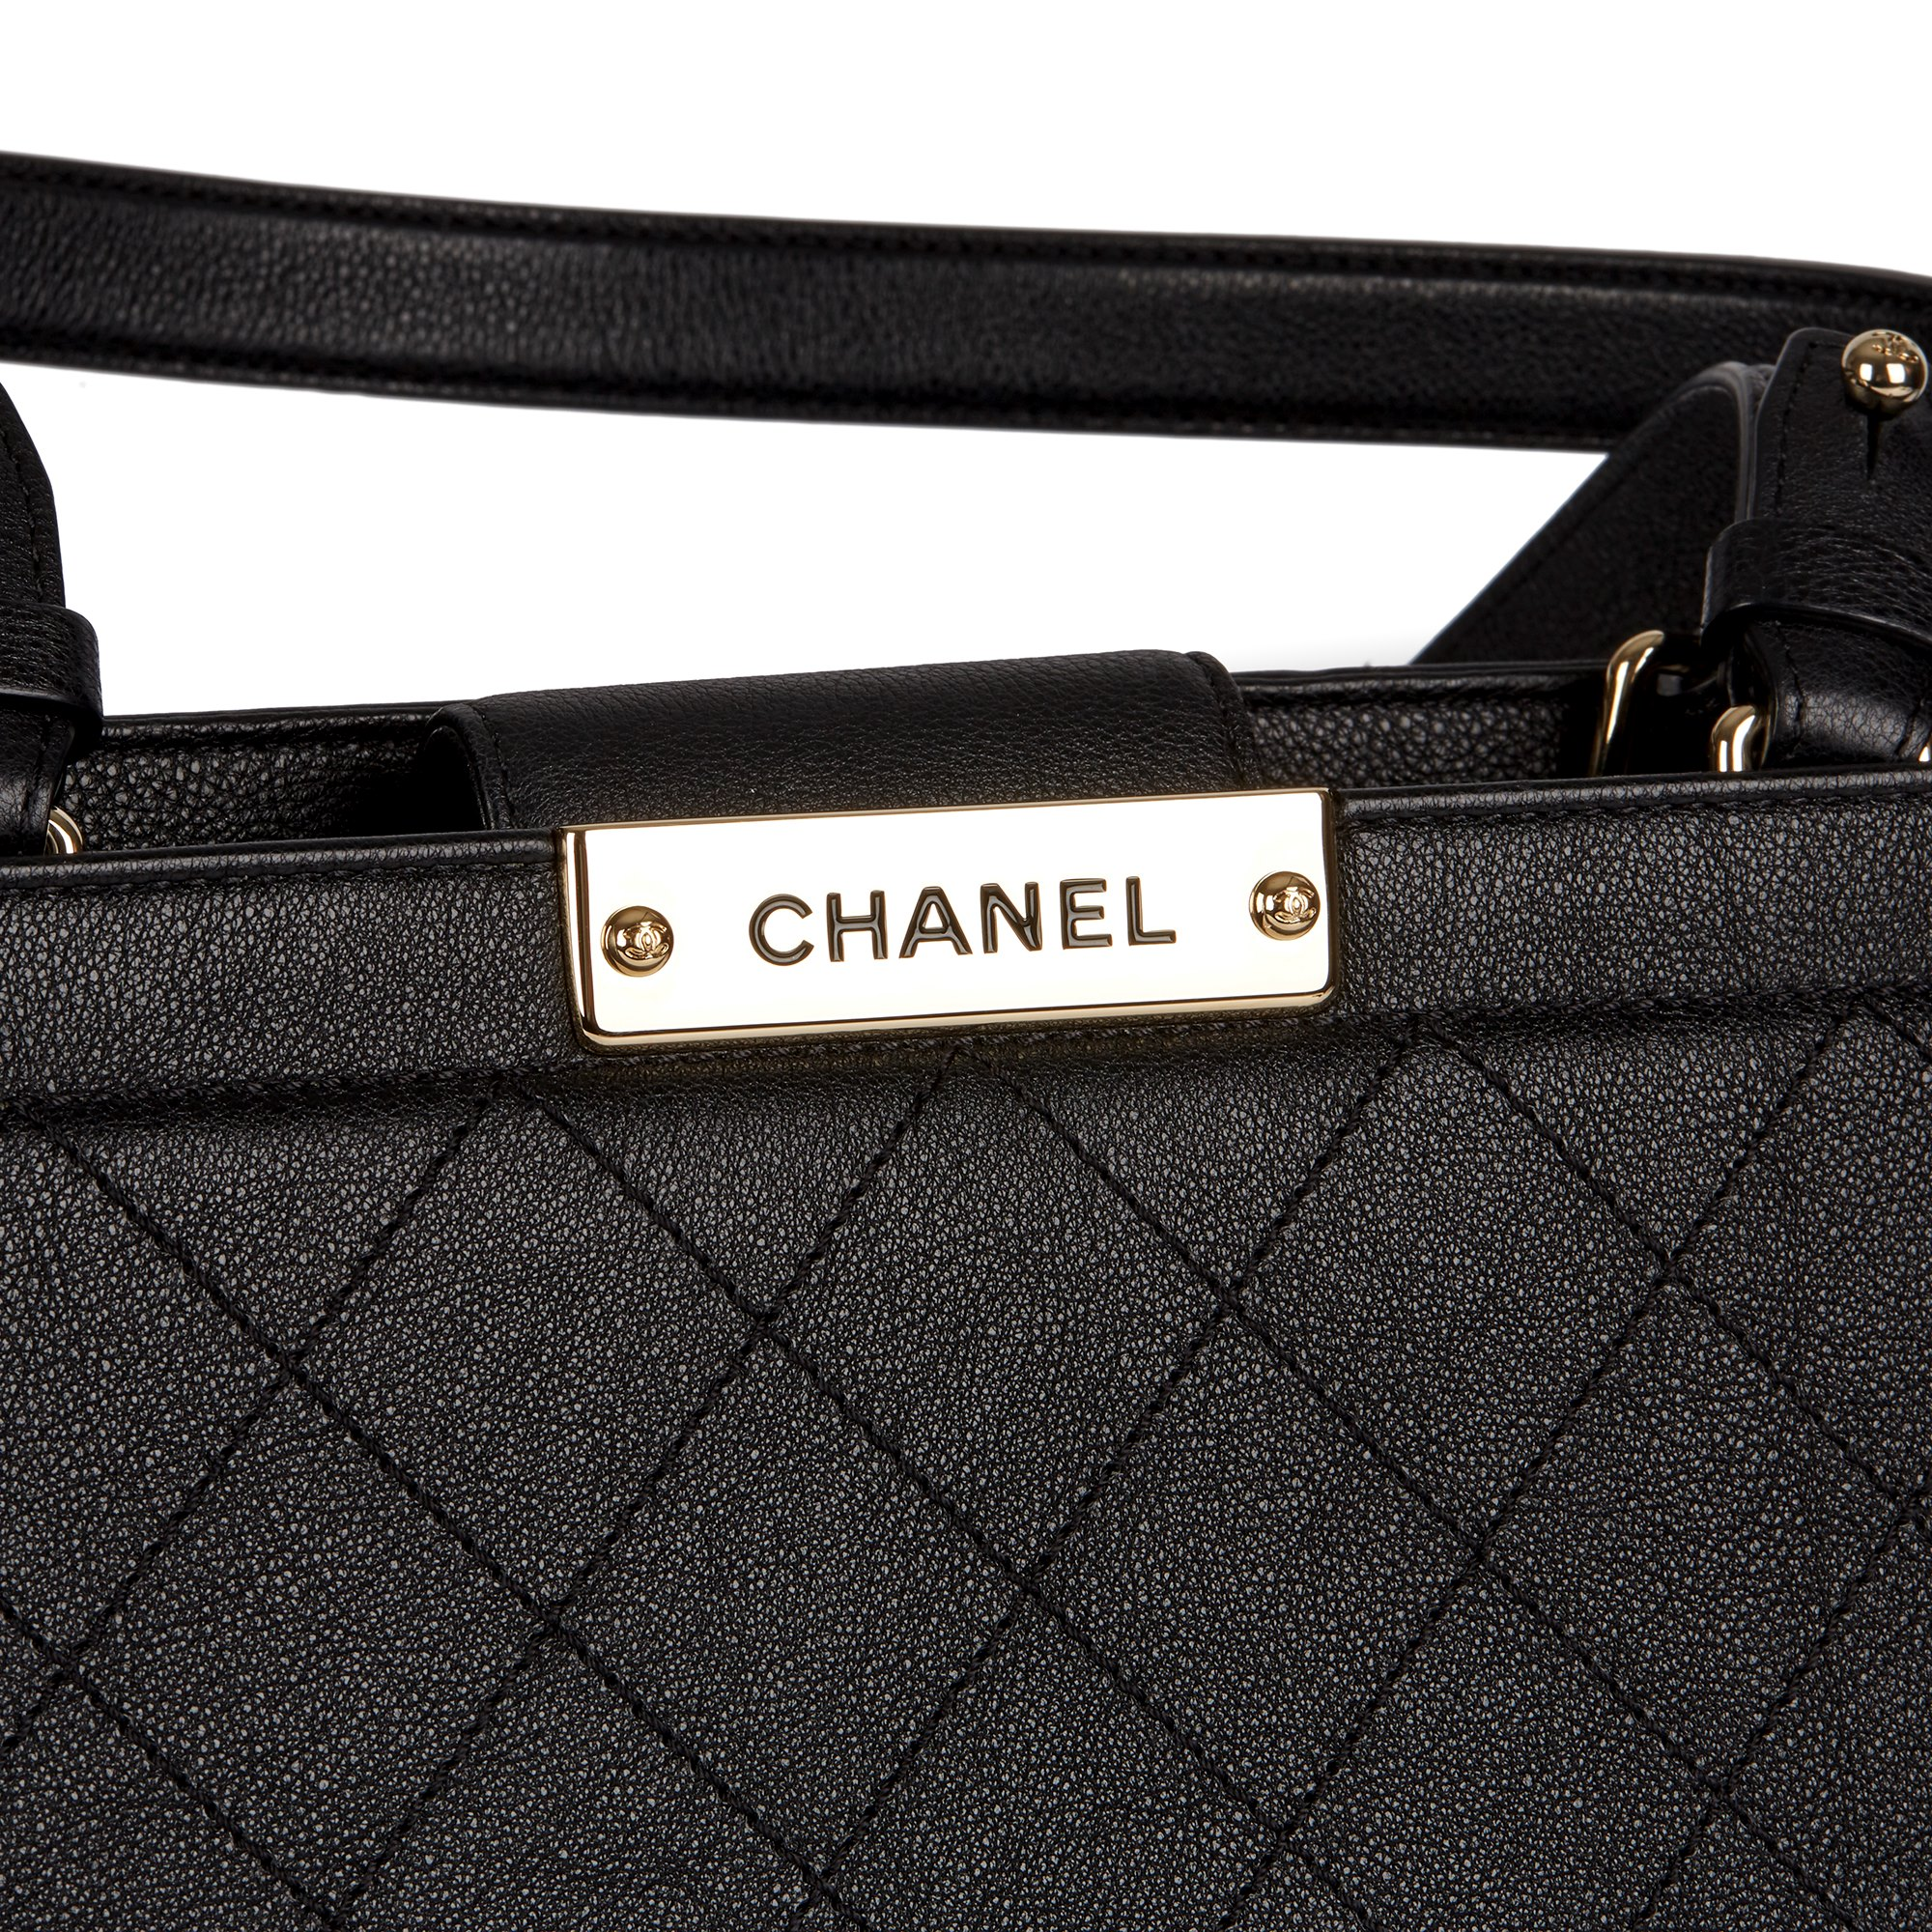 Chanel Black Quilted Calfskin Leather Large Label Click bidping Tote - Image 6 of 11